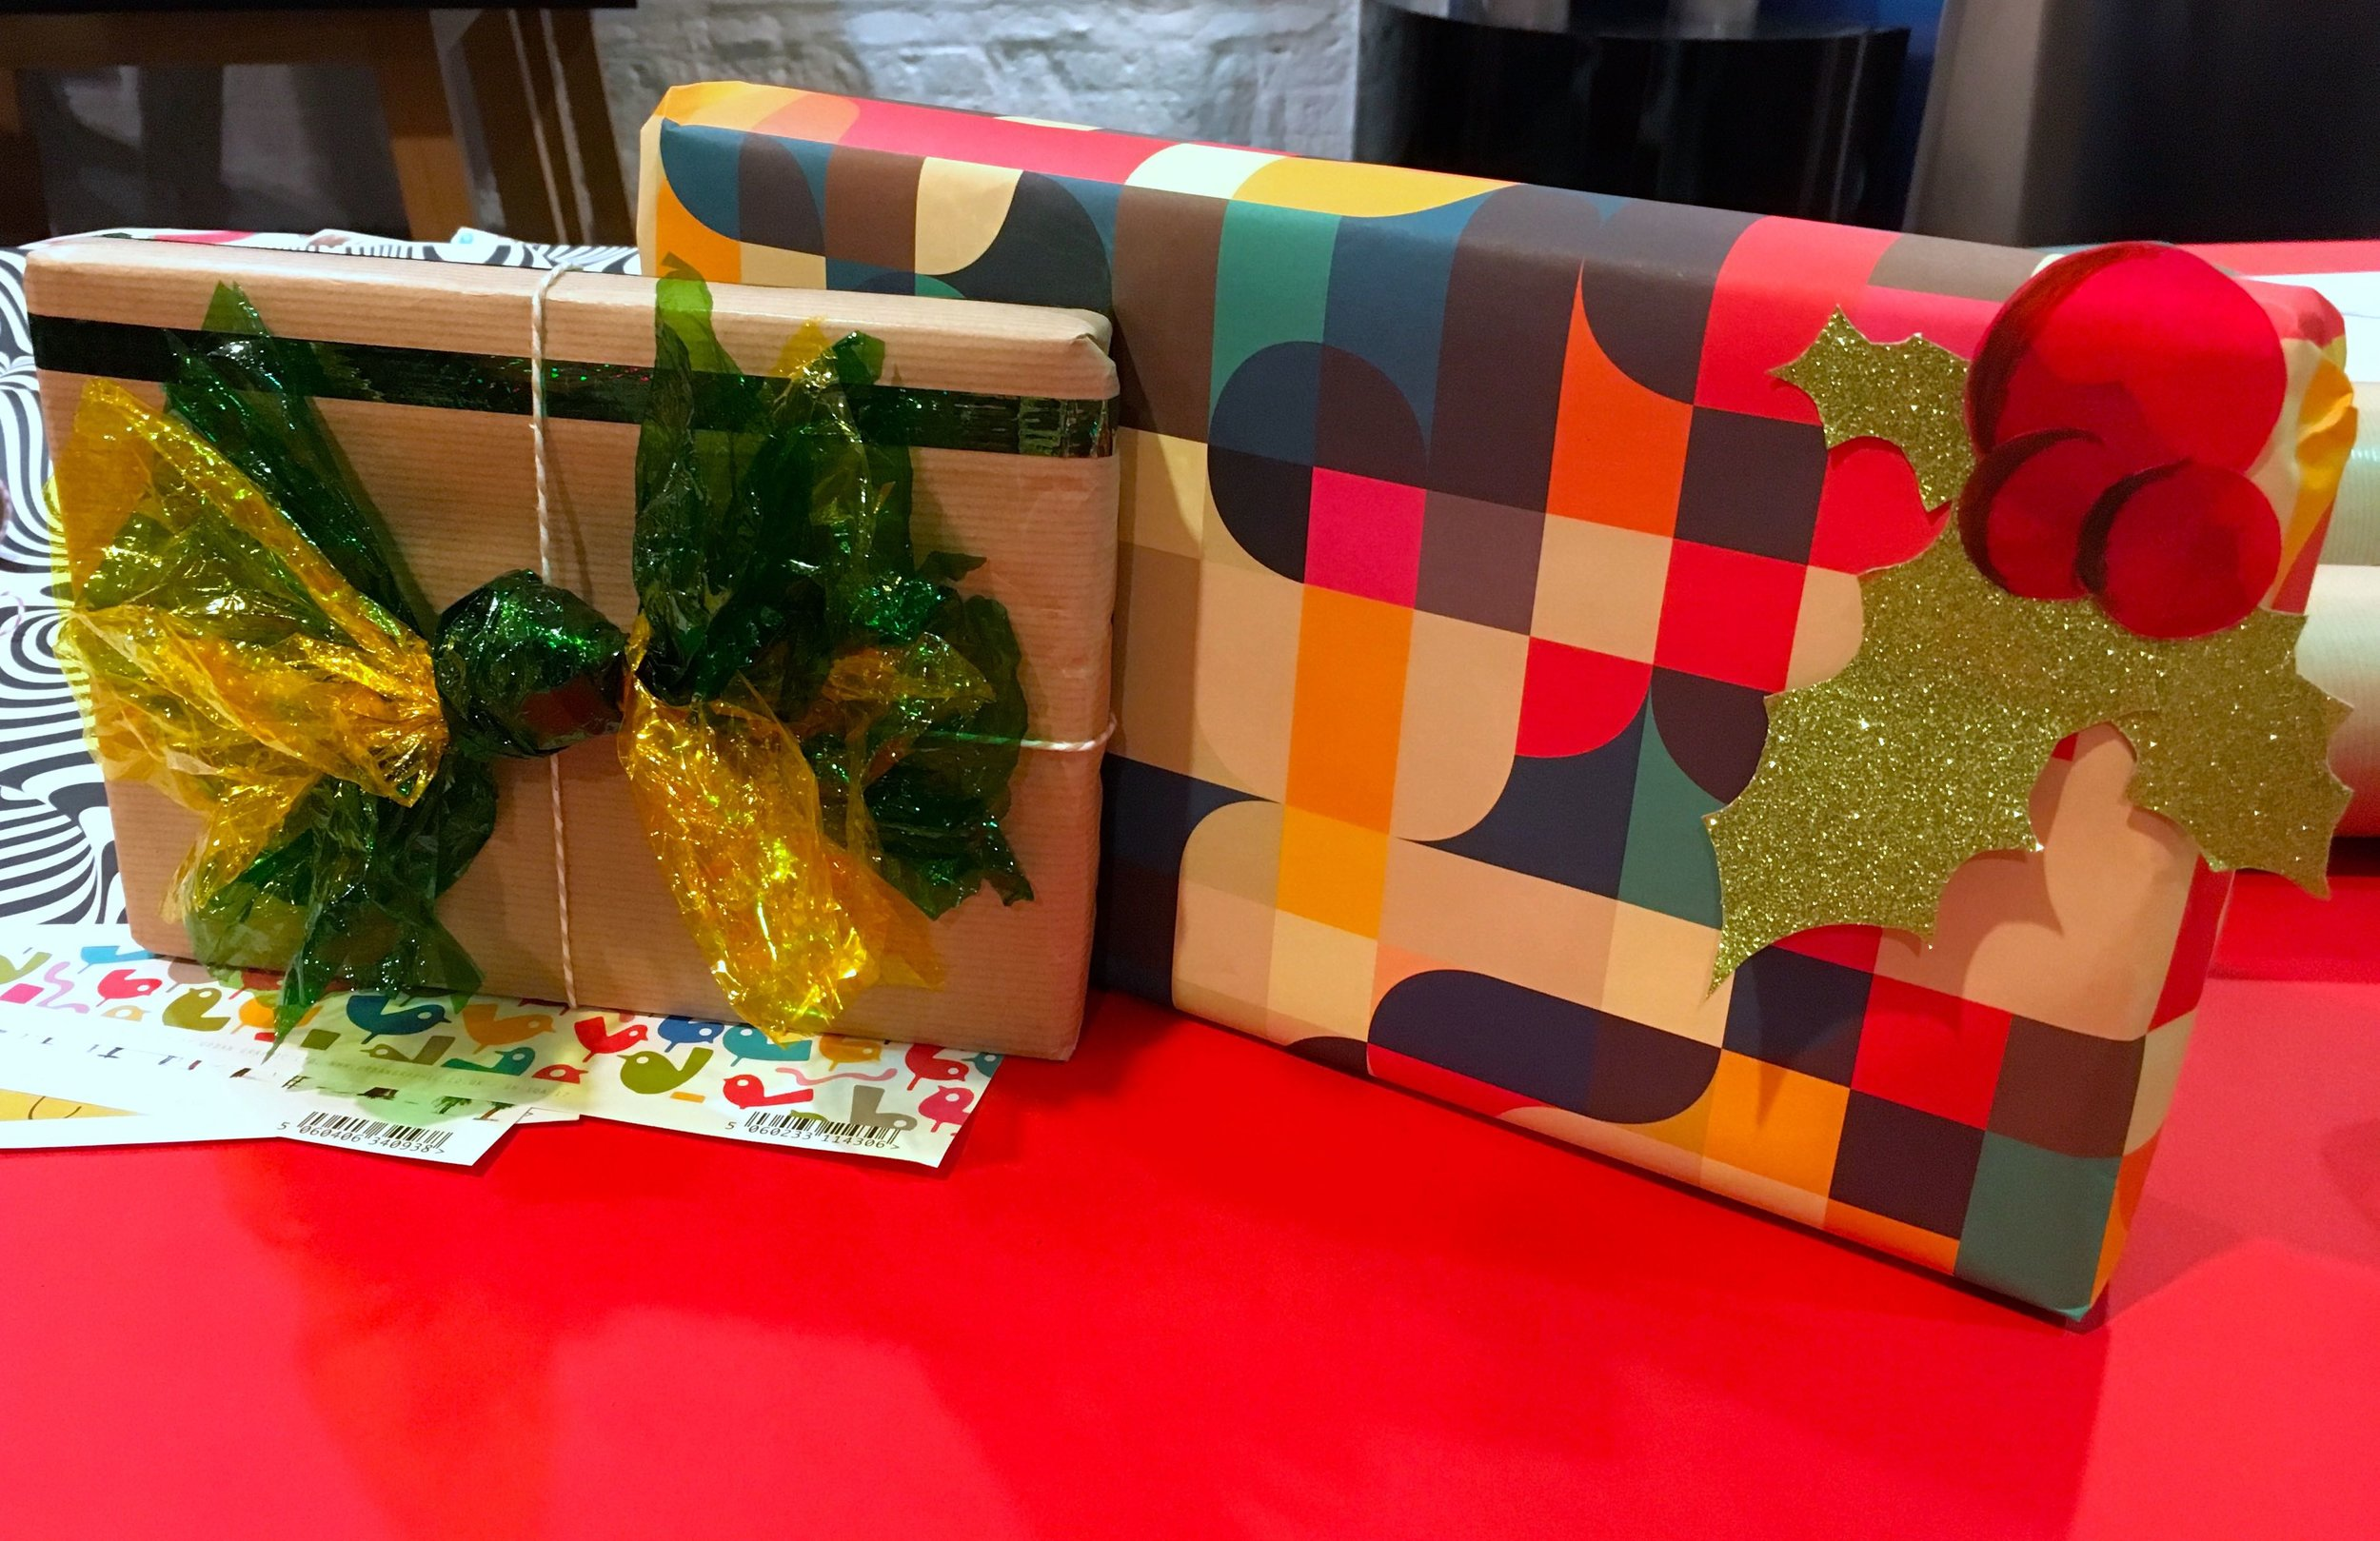 The presents we wrapped as part of the #LGCChristmasWrap